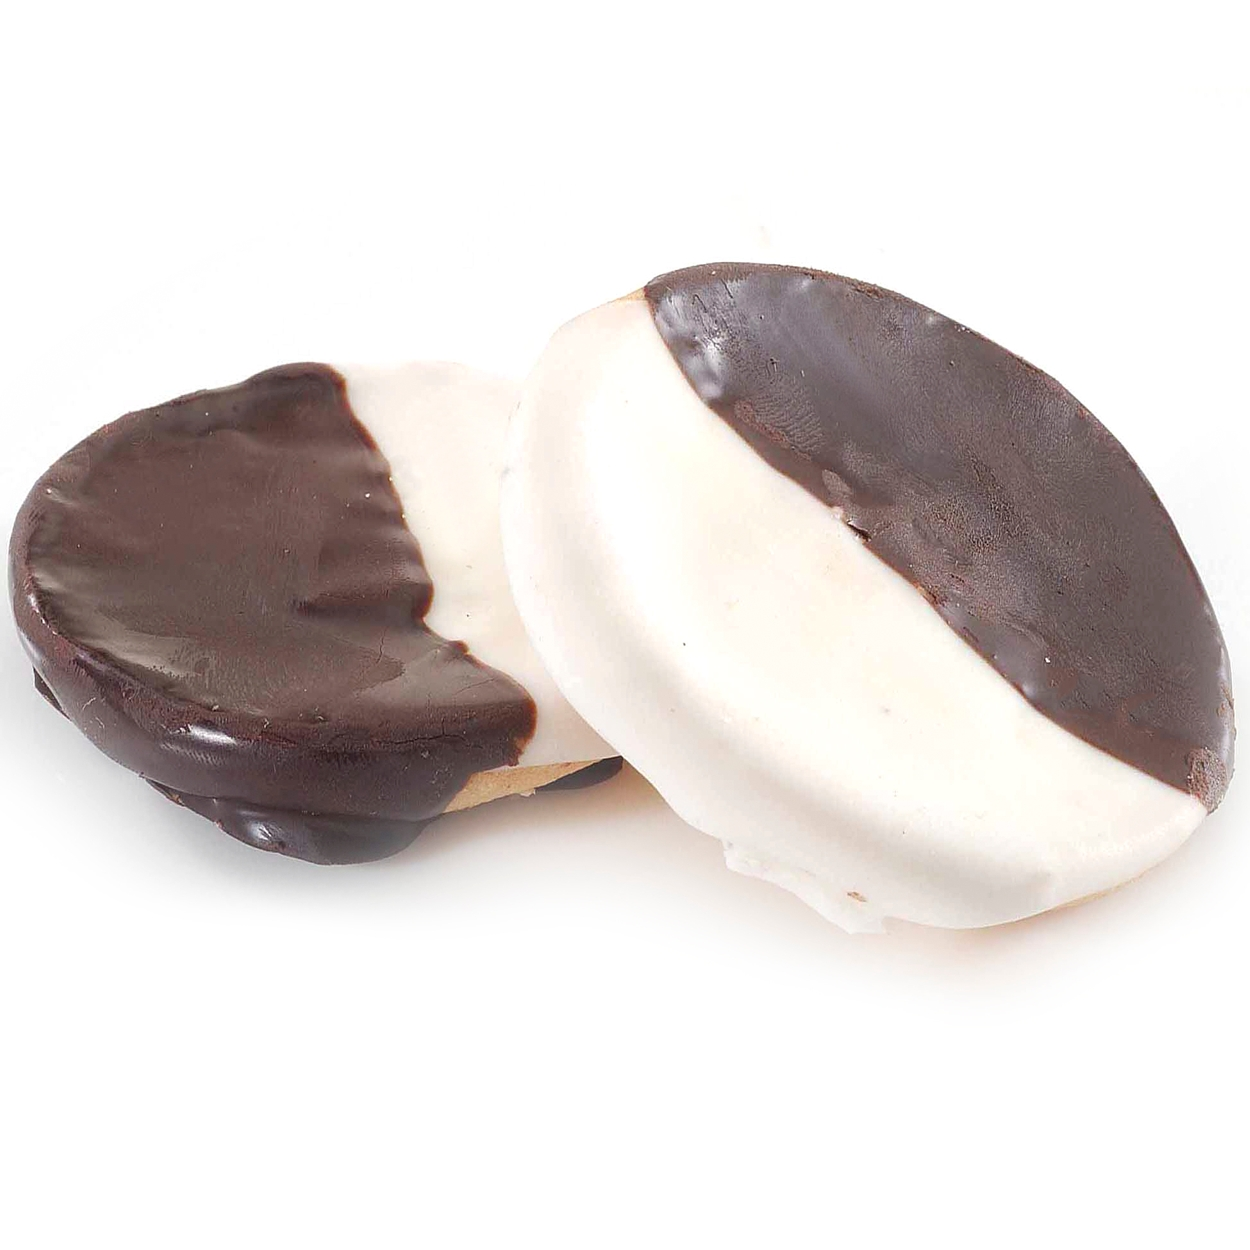 Gluten free passover black white cookies 10 oz passover gluten free passover black white cookies 10 oz passover cookies passover bakery cakes cookies passover gift baskets candy chocolate nuts negle Image collections